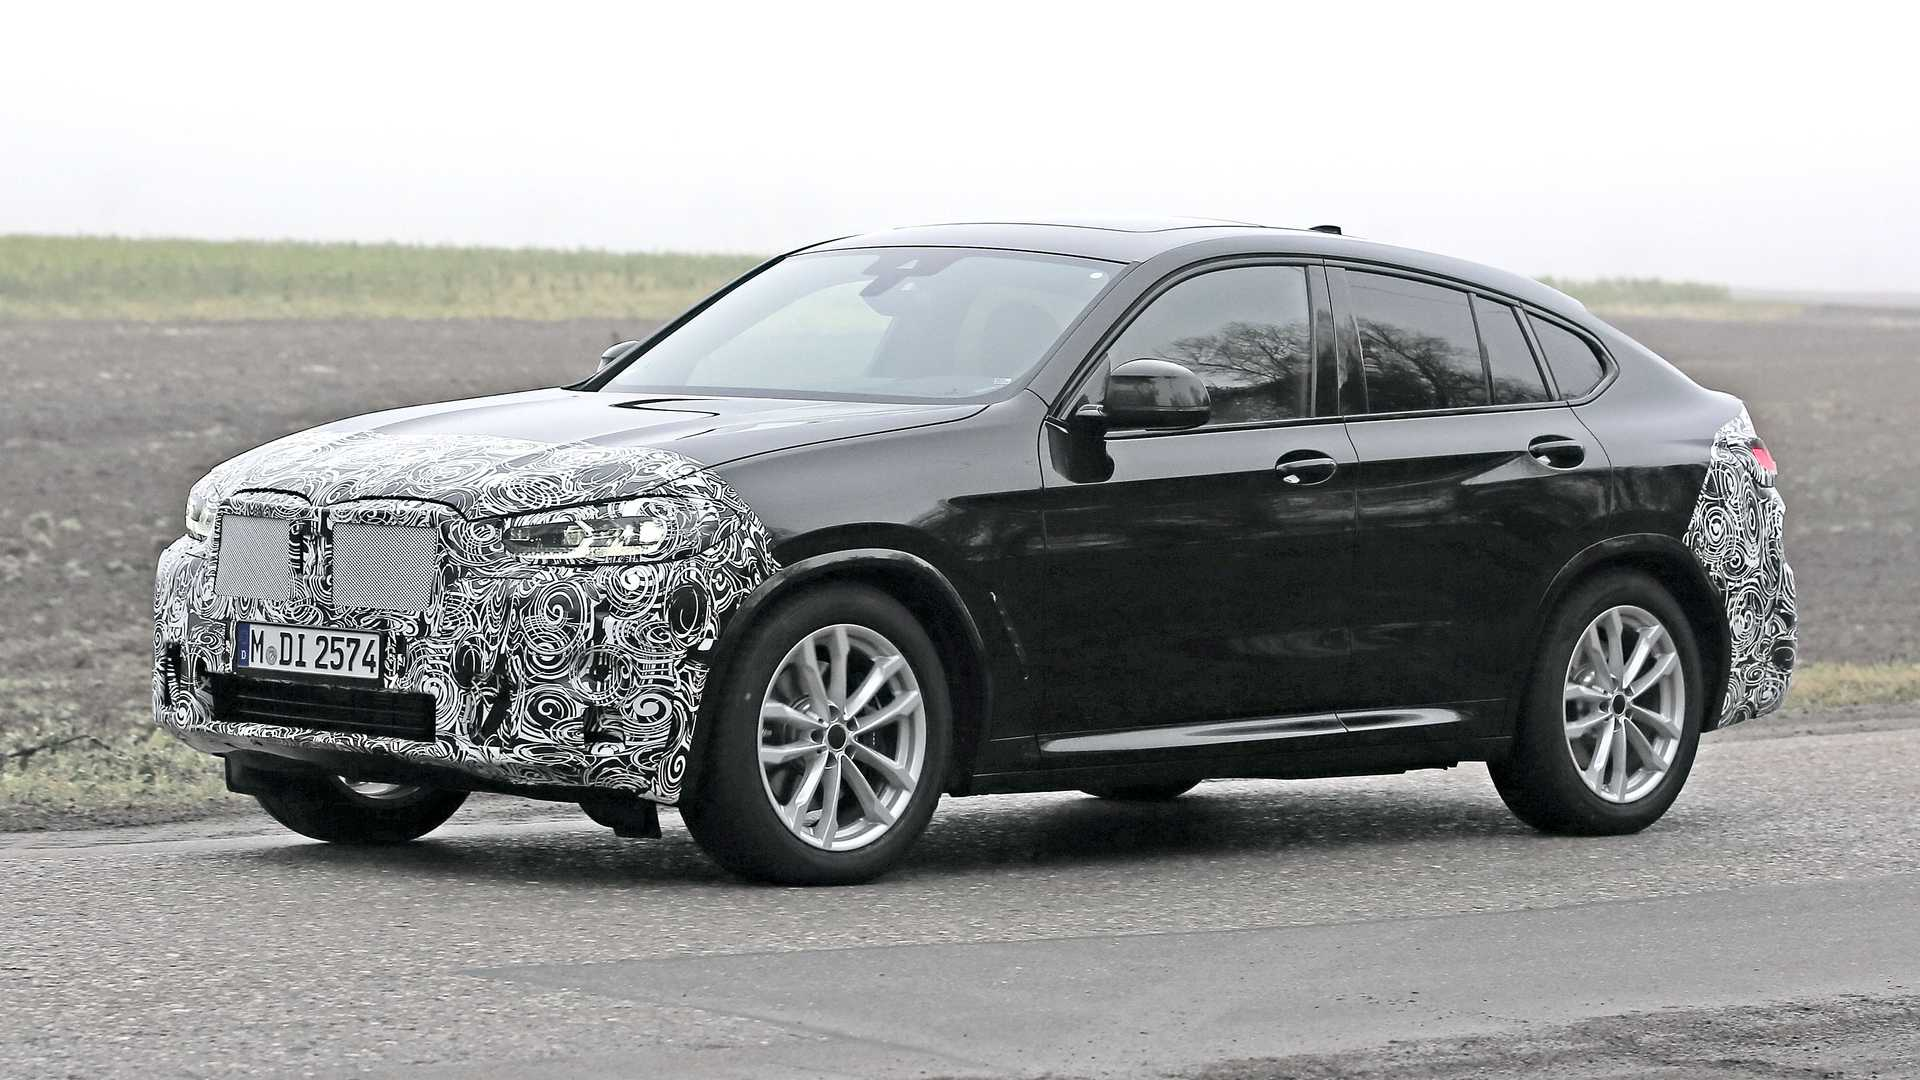 Face Lifted 2022 BMW X4 Spied During Testing - Motor1